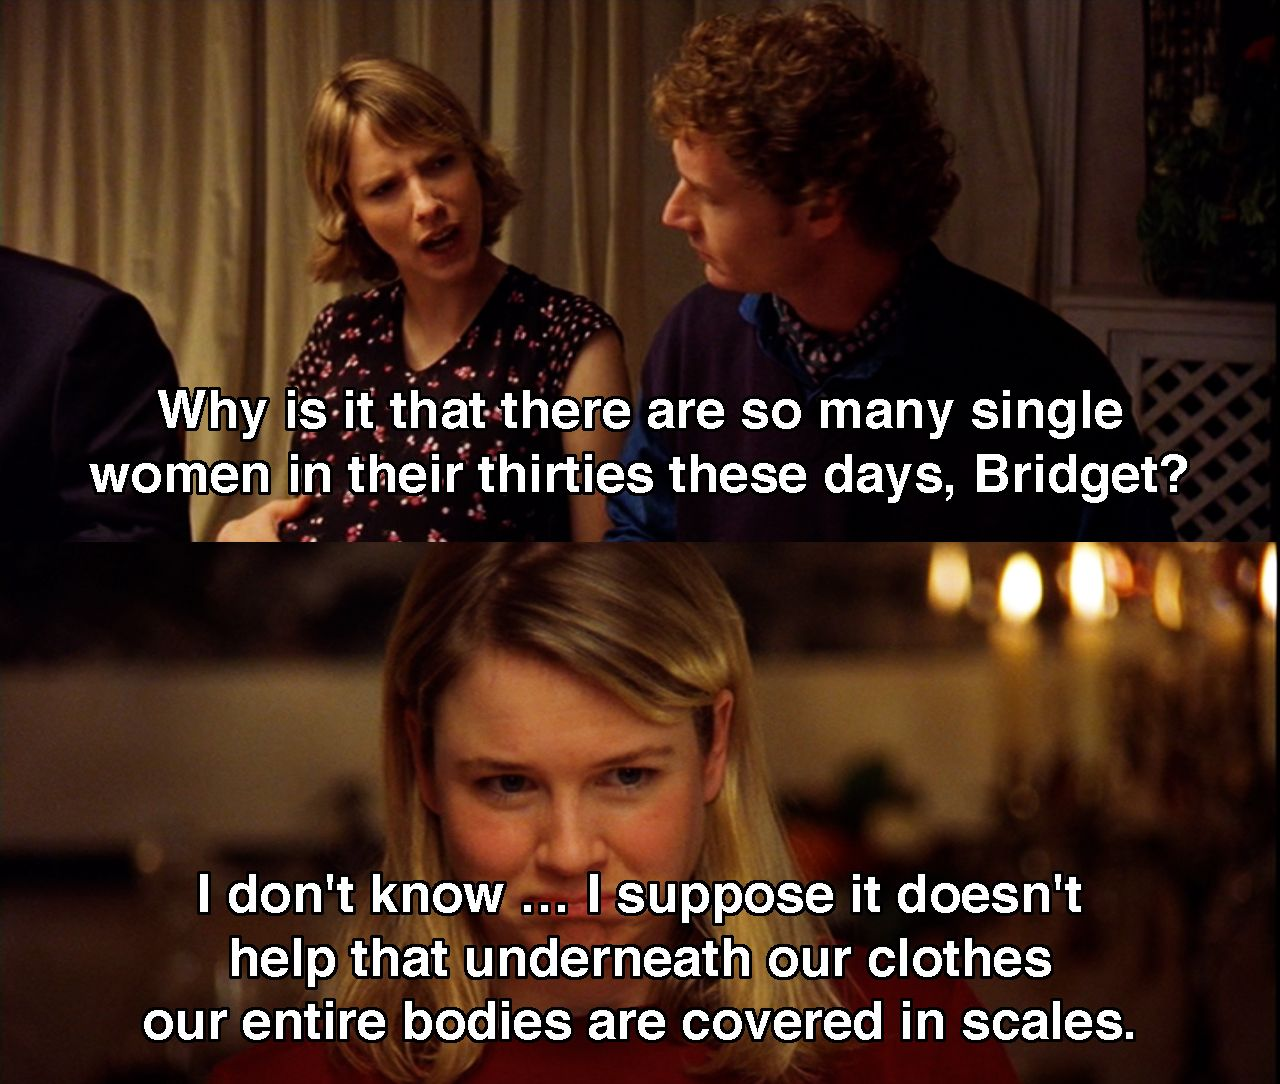 Quotes From The Movie The Help Bridget Jones' Guide To A Night Out  Bridget Jones Movie And Tvs